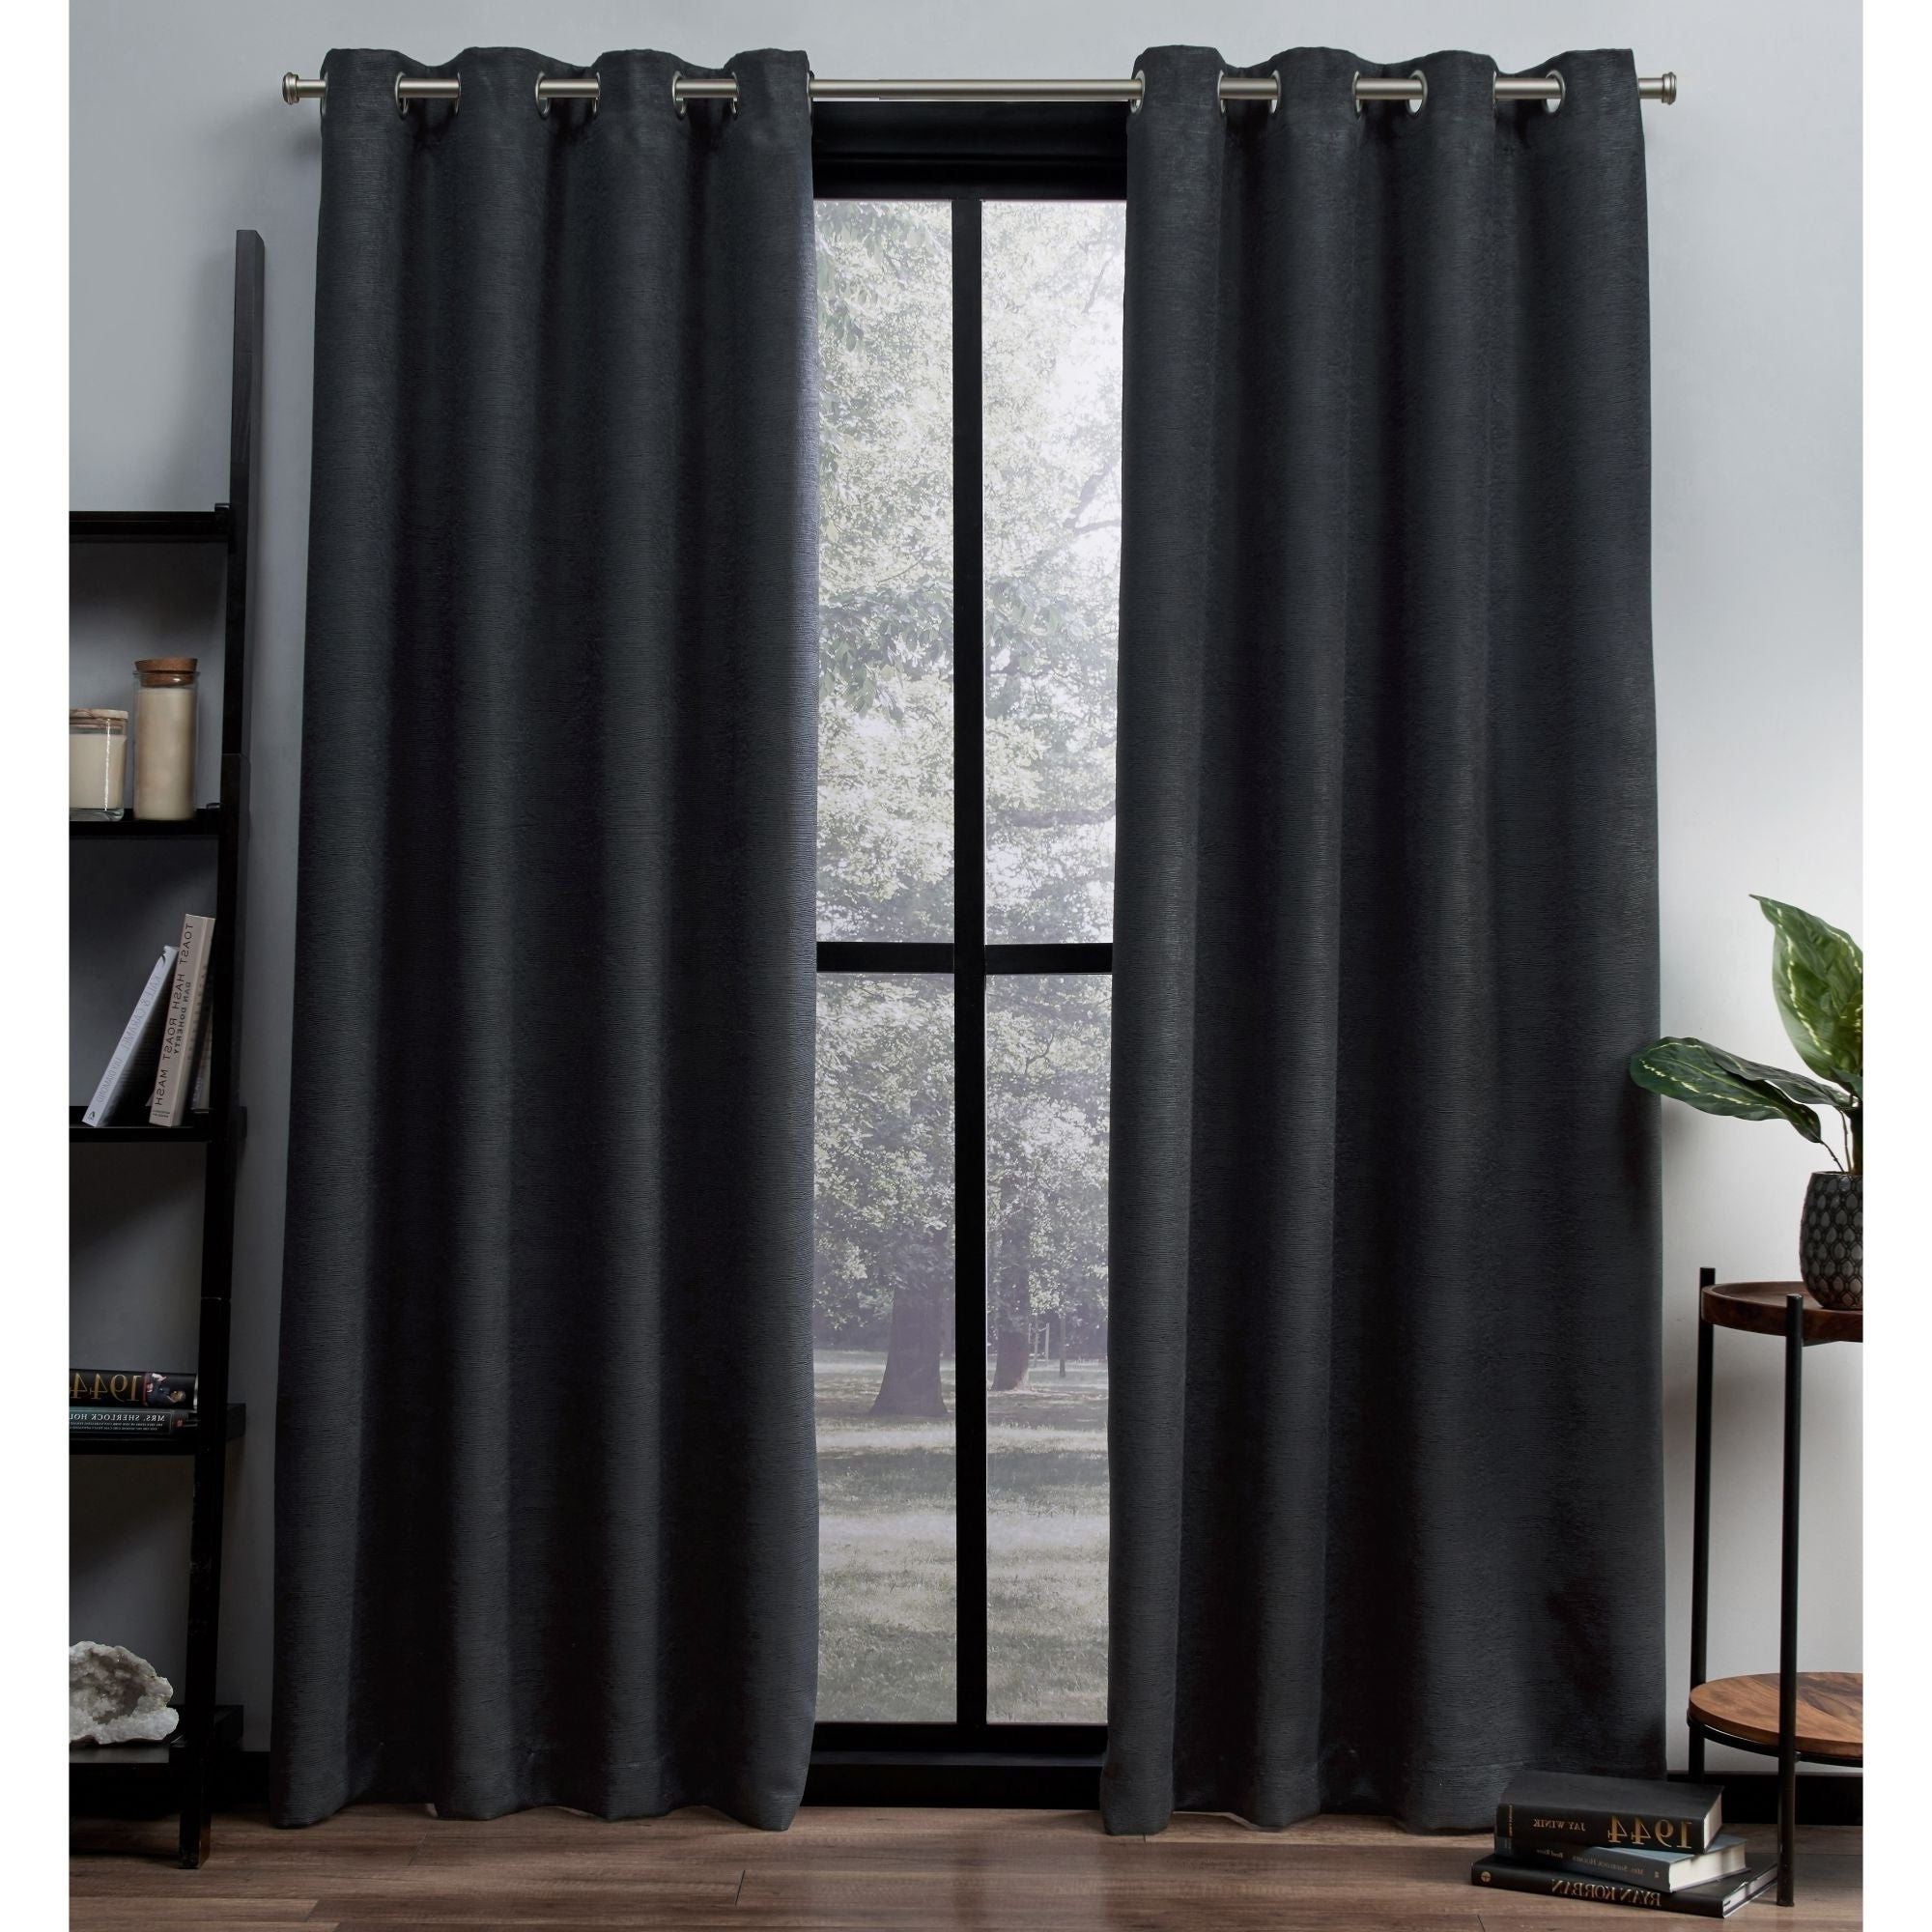 Oxford Sateen Woven Blackout Grommet Top Curtain Panel Pairs Pertaining To 2021 Ati Home Oxford Sateen Woven Blackout Grommet Top Curtain Panel Pair (View 12 of 20)